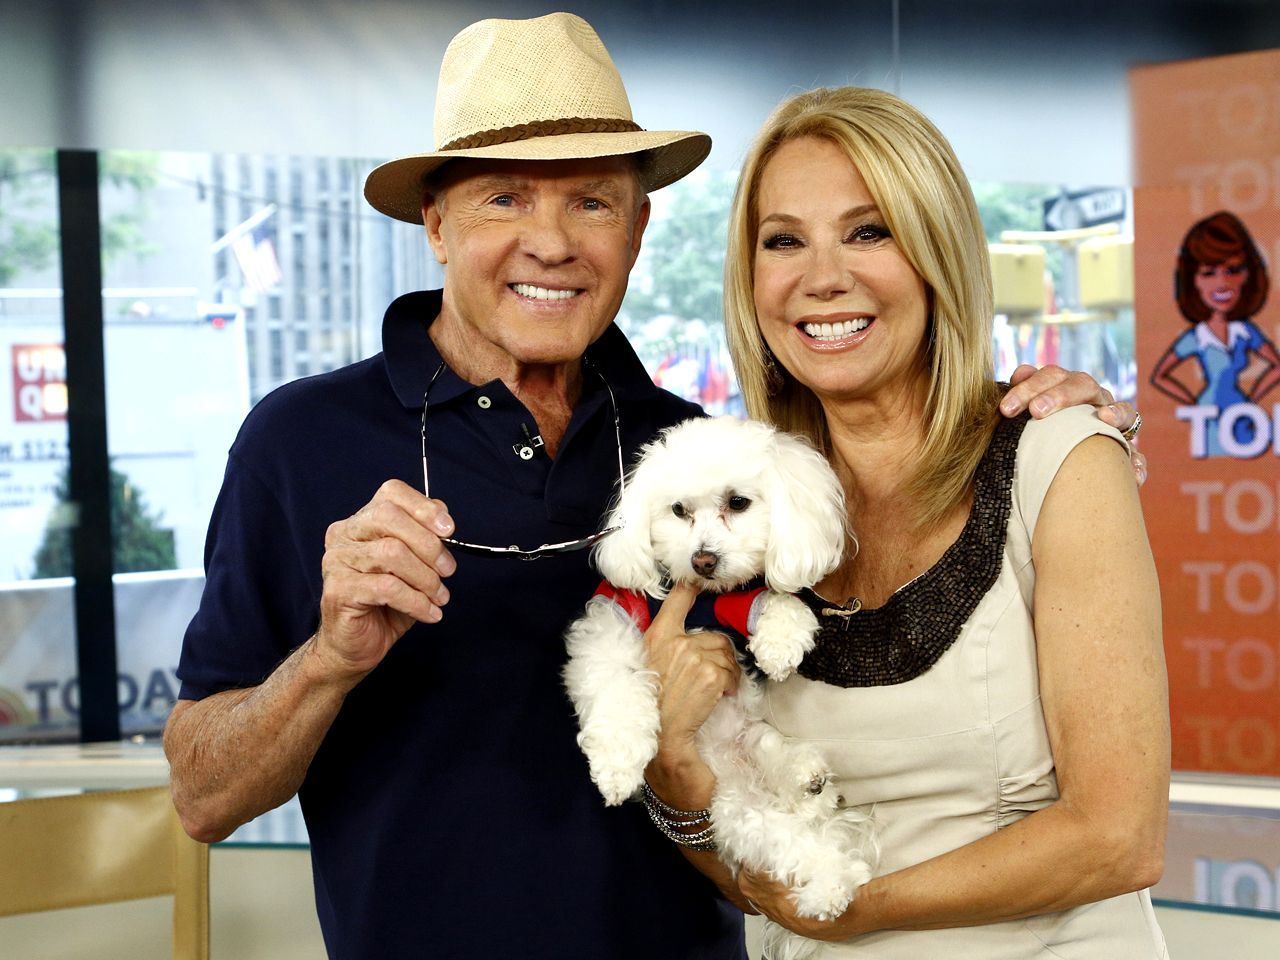 Frank gifford shares secrets to marriage with kathie lee for Frank and kathie lee gifford wedding